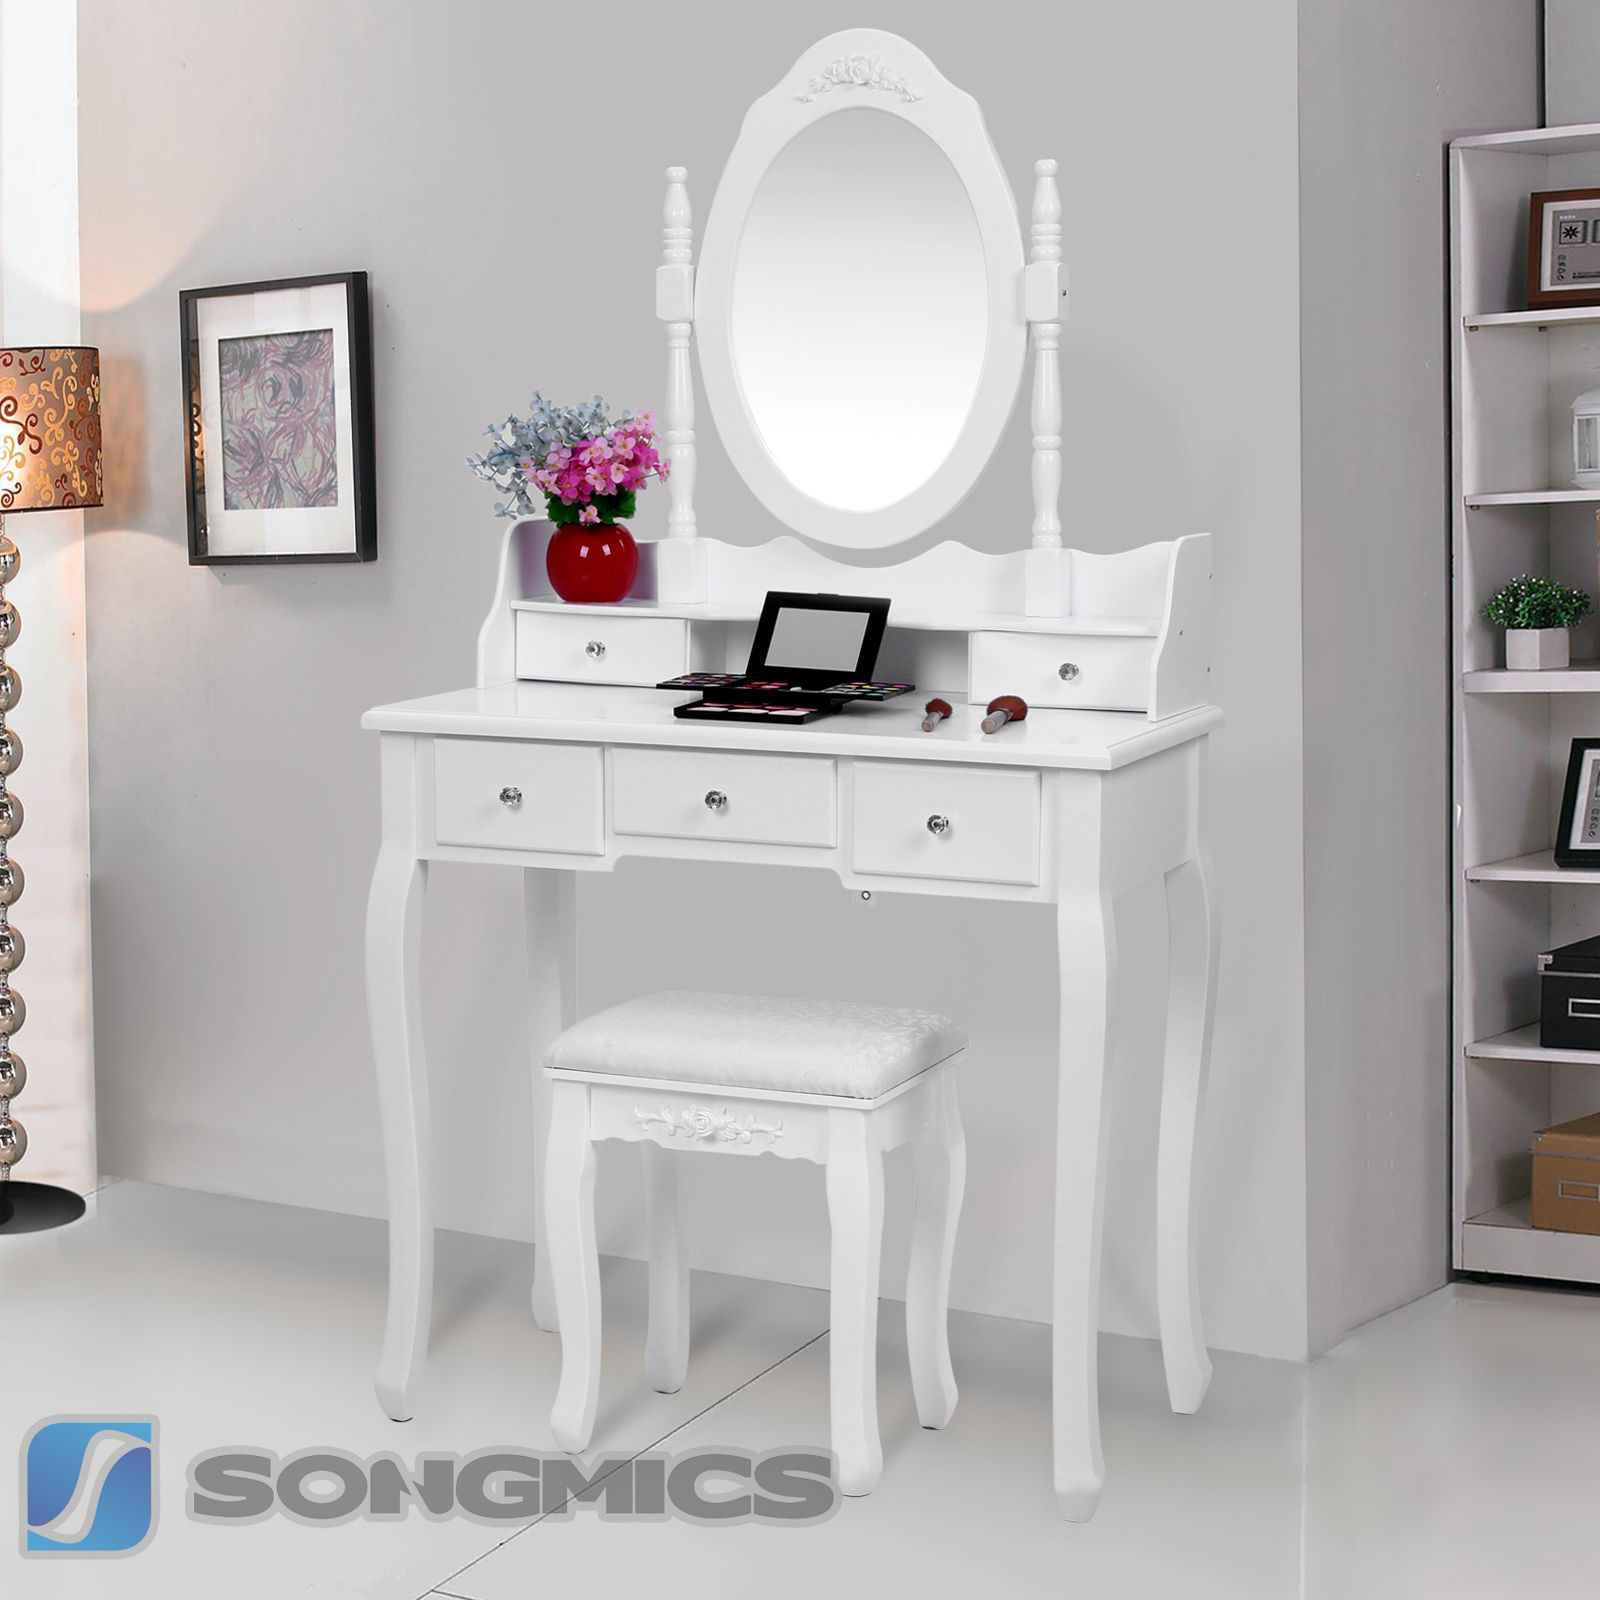 Details about songmics white ivory pink dressing table